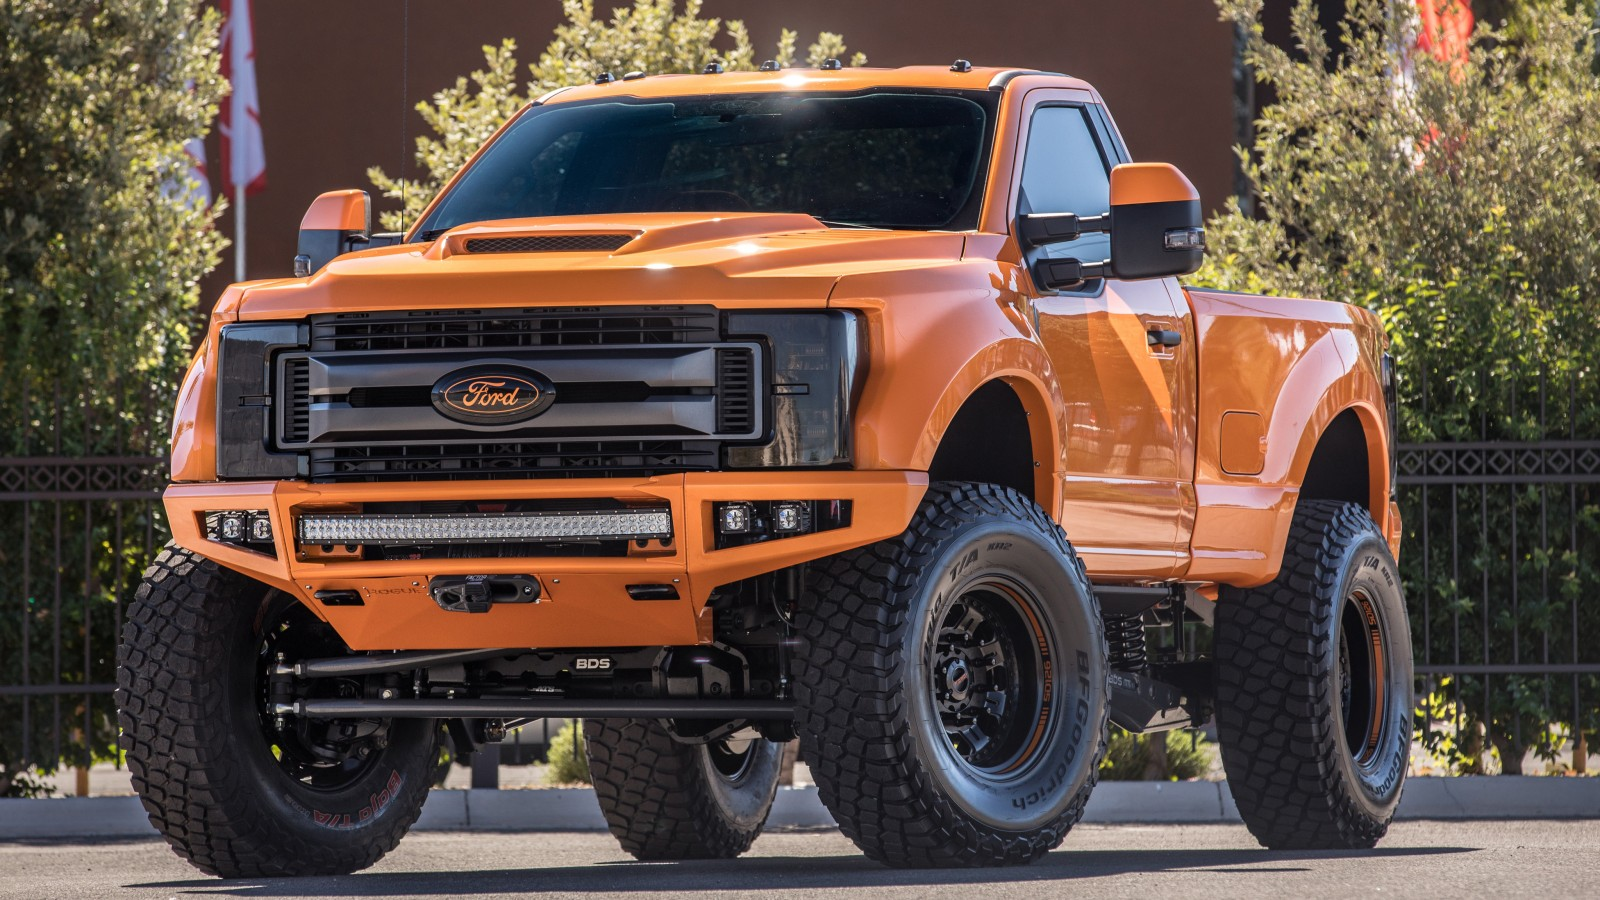 2017 Ford F 250 Super Duty XLT By BDS Suspension Wallpaper ...